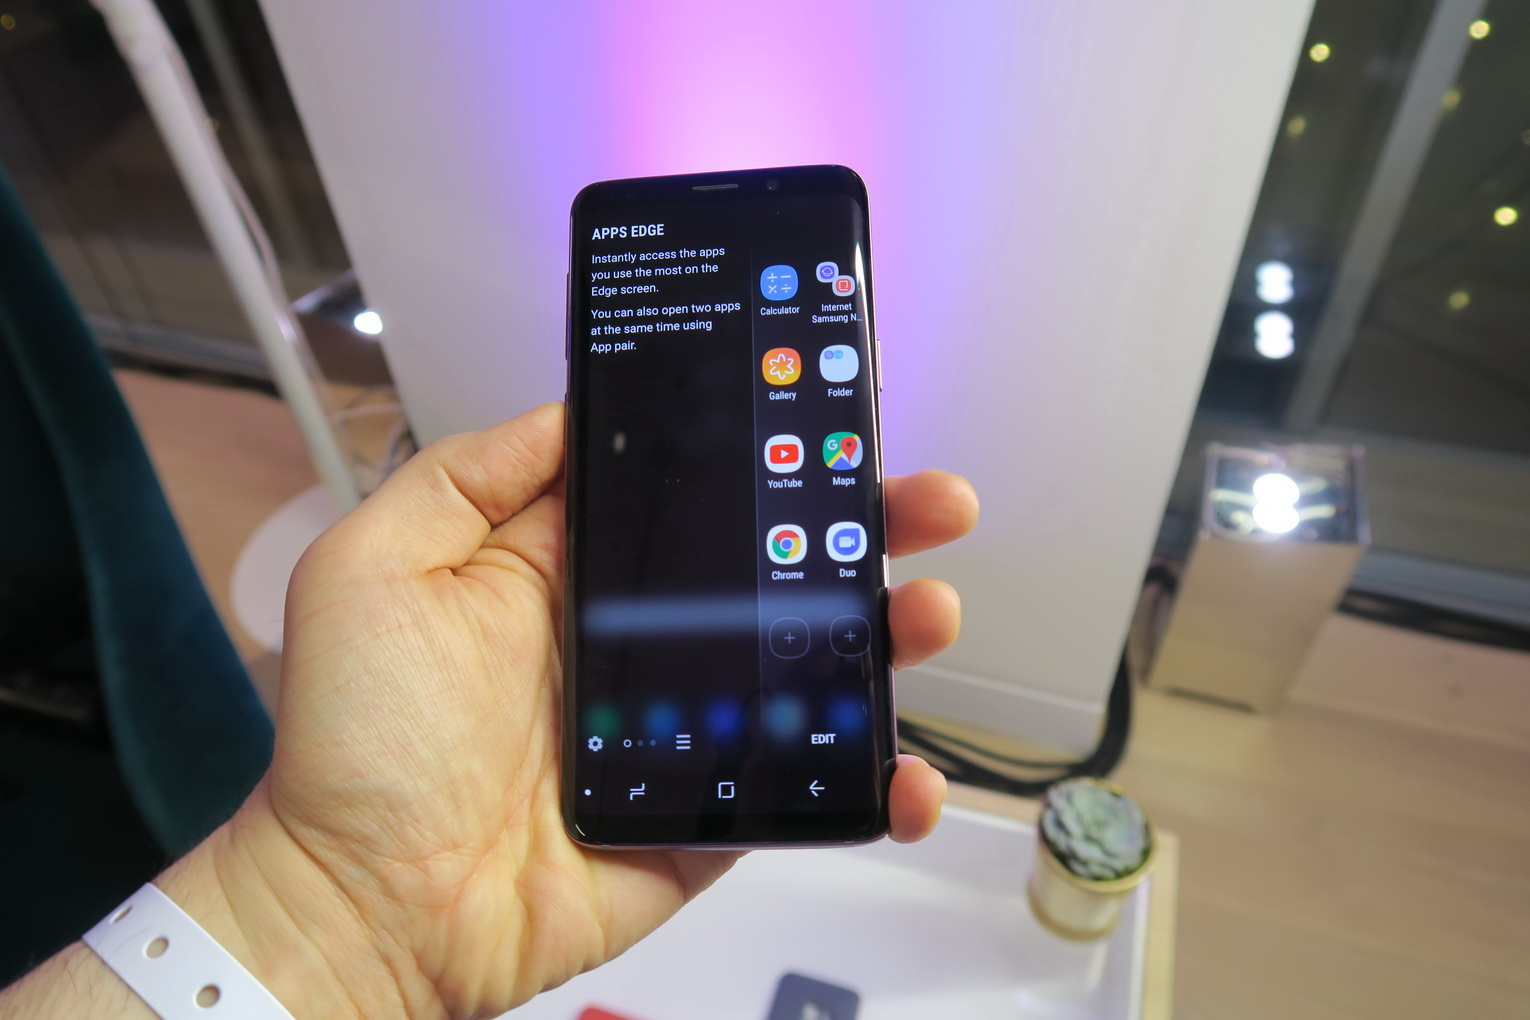 MWC 2018: Samsung Galaxy S9+ Hands on Review: Dual Camera